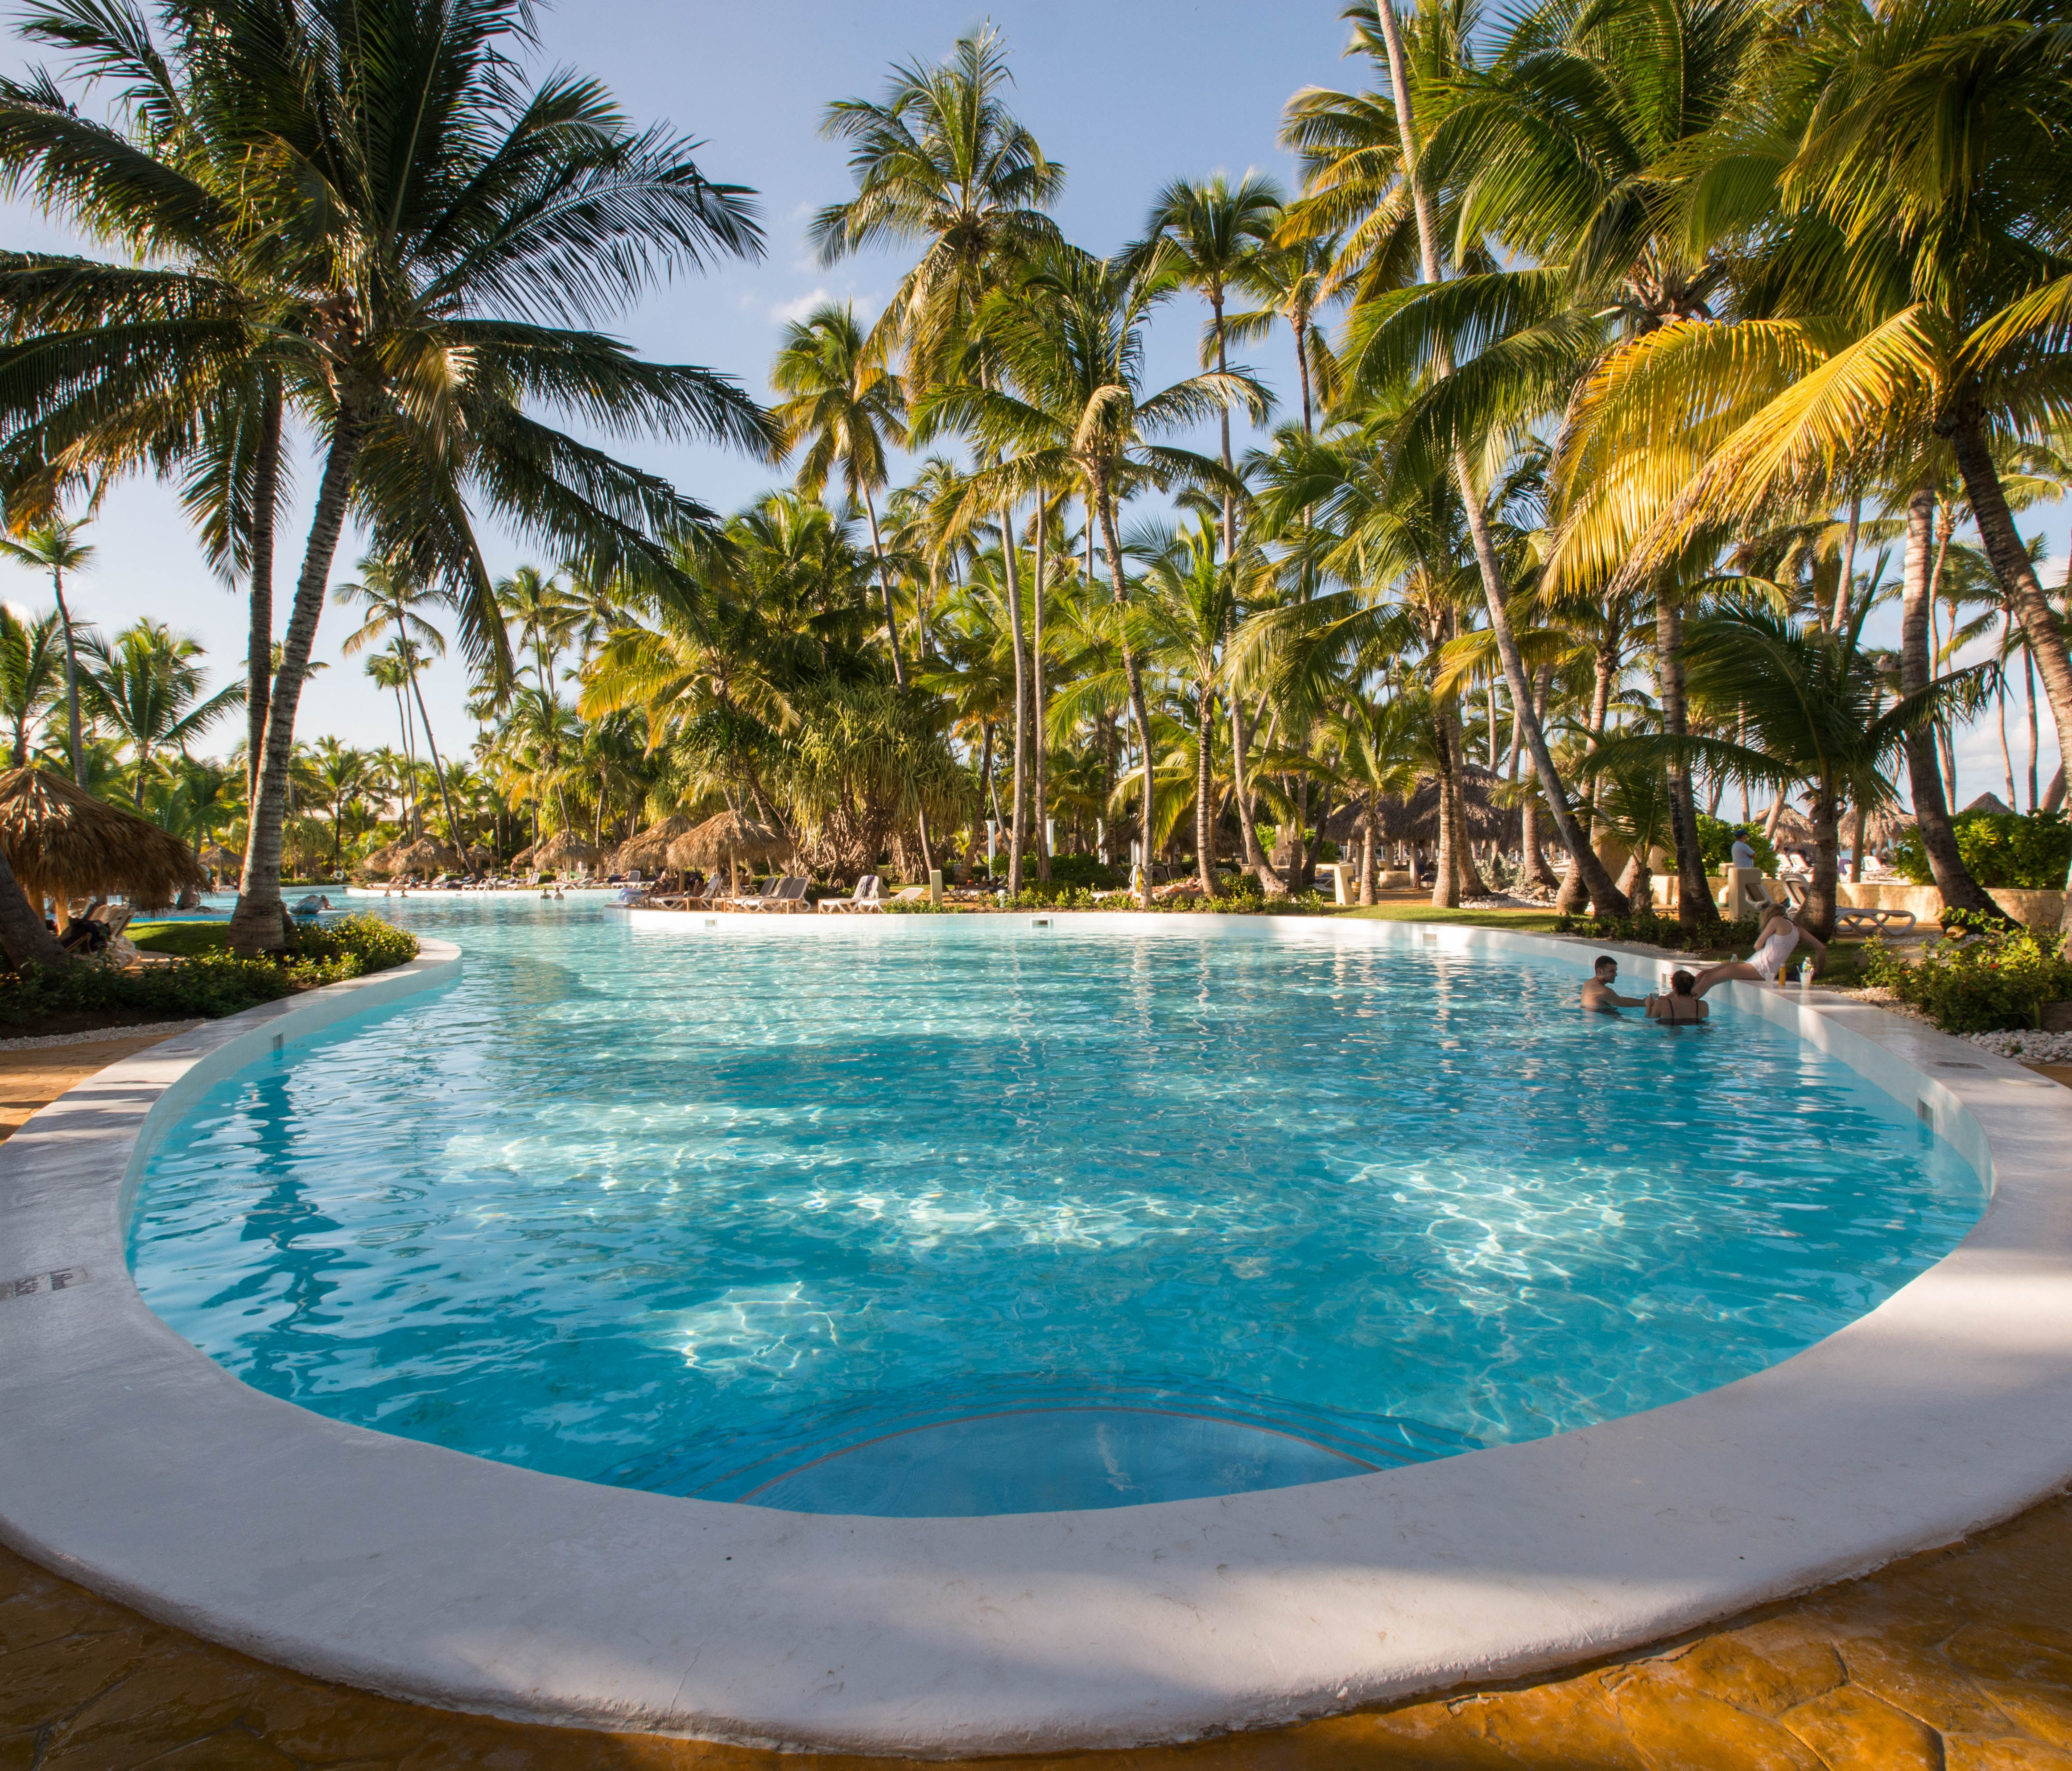 The Level at Melia Caribe Tropical, Dominican Republic: Adult-only and family-friendly sections mean this resort has broad appeal, catering to everyone from honeymooners to toddlers to groups of 70-somethings. The adults-only pool, for example, featu